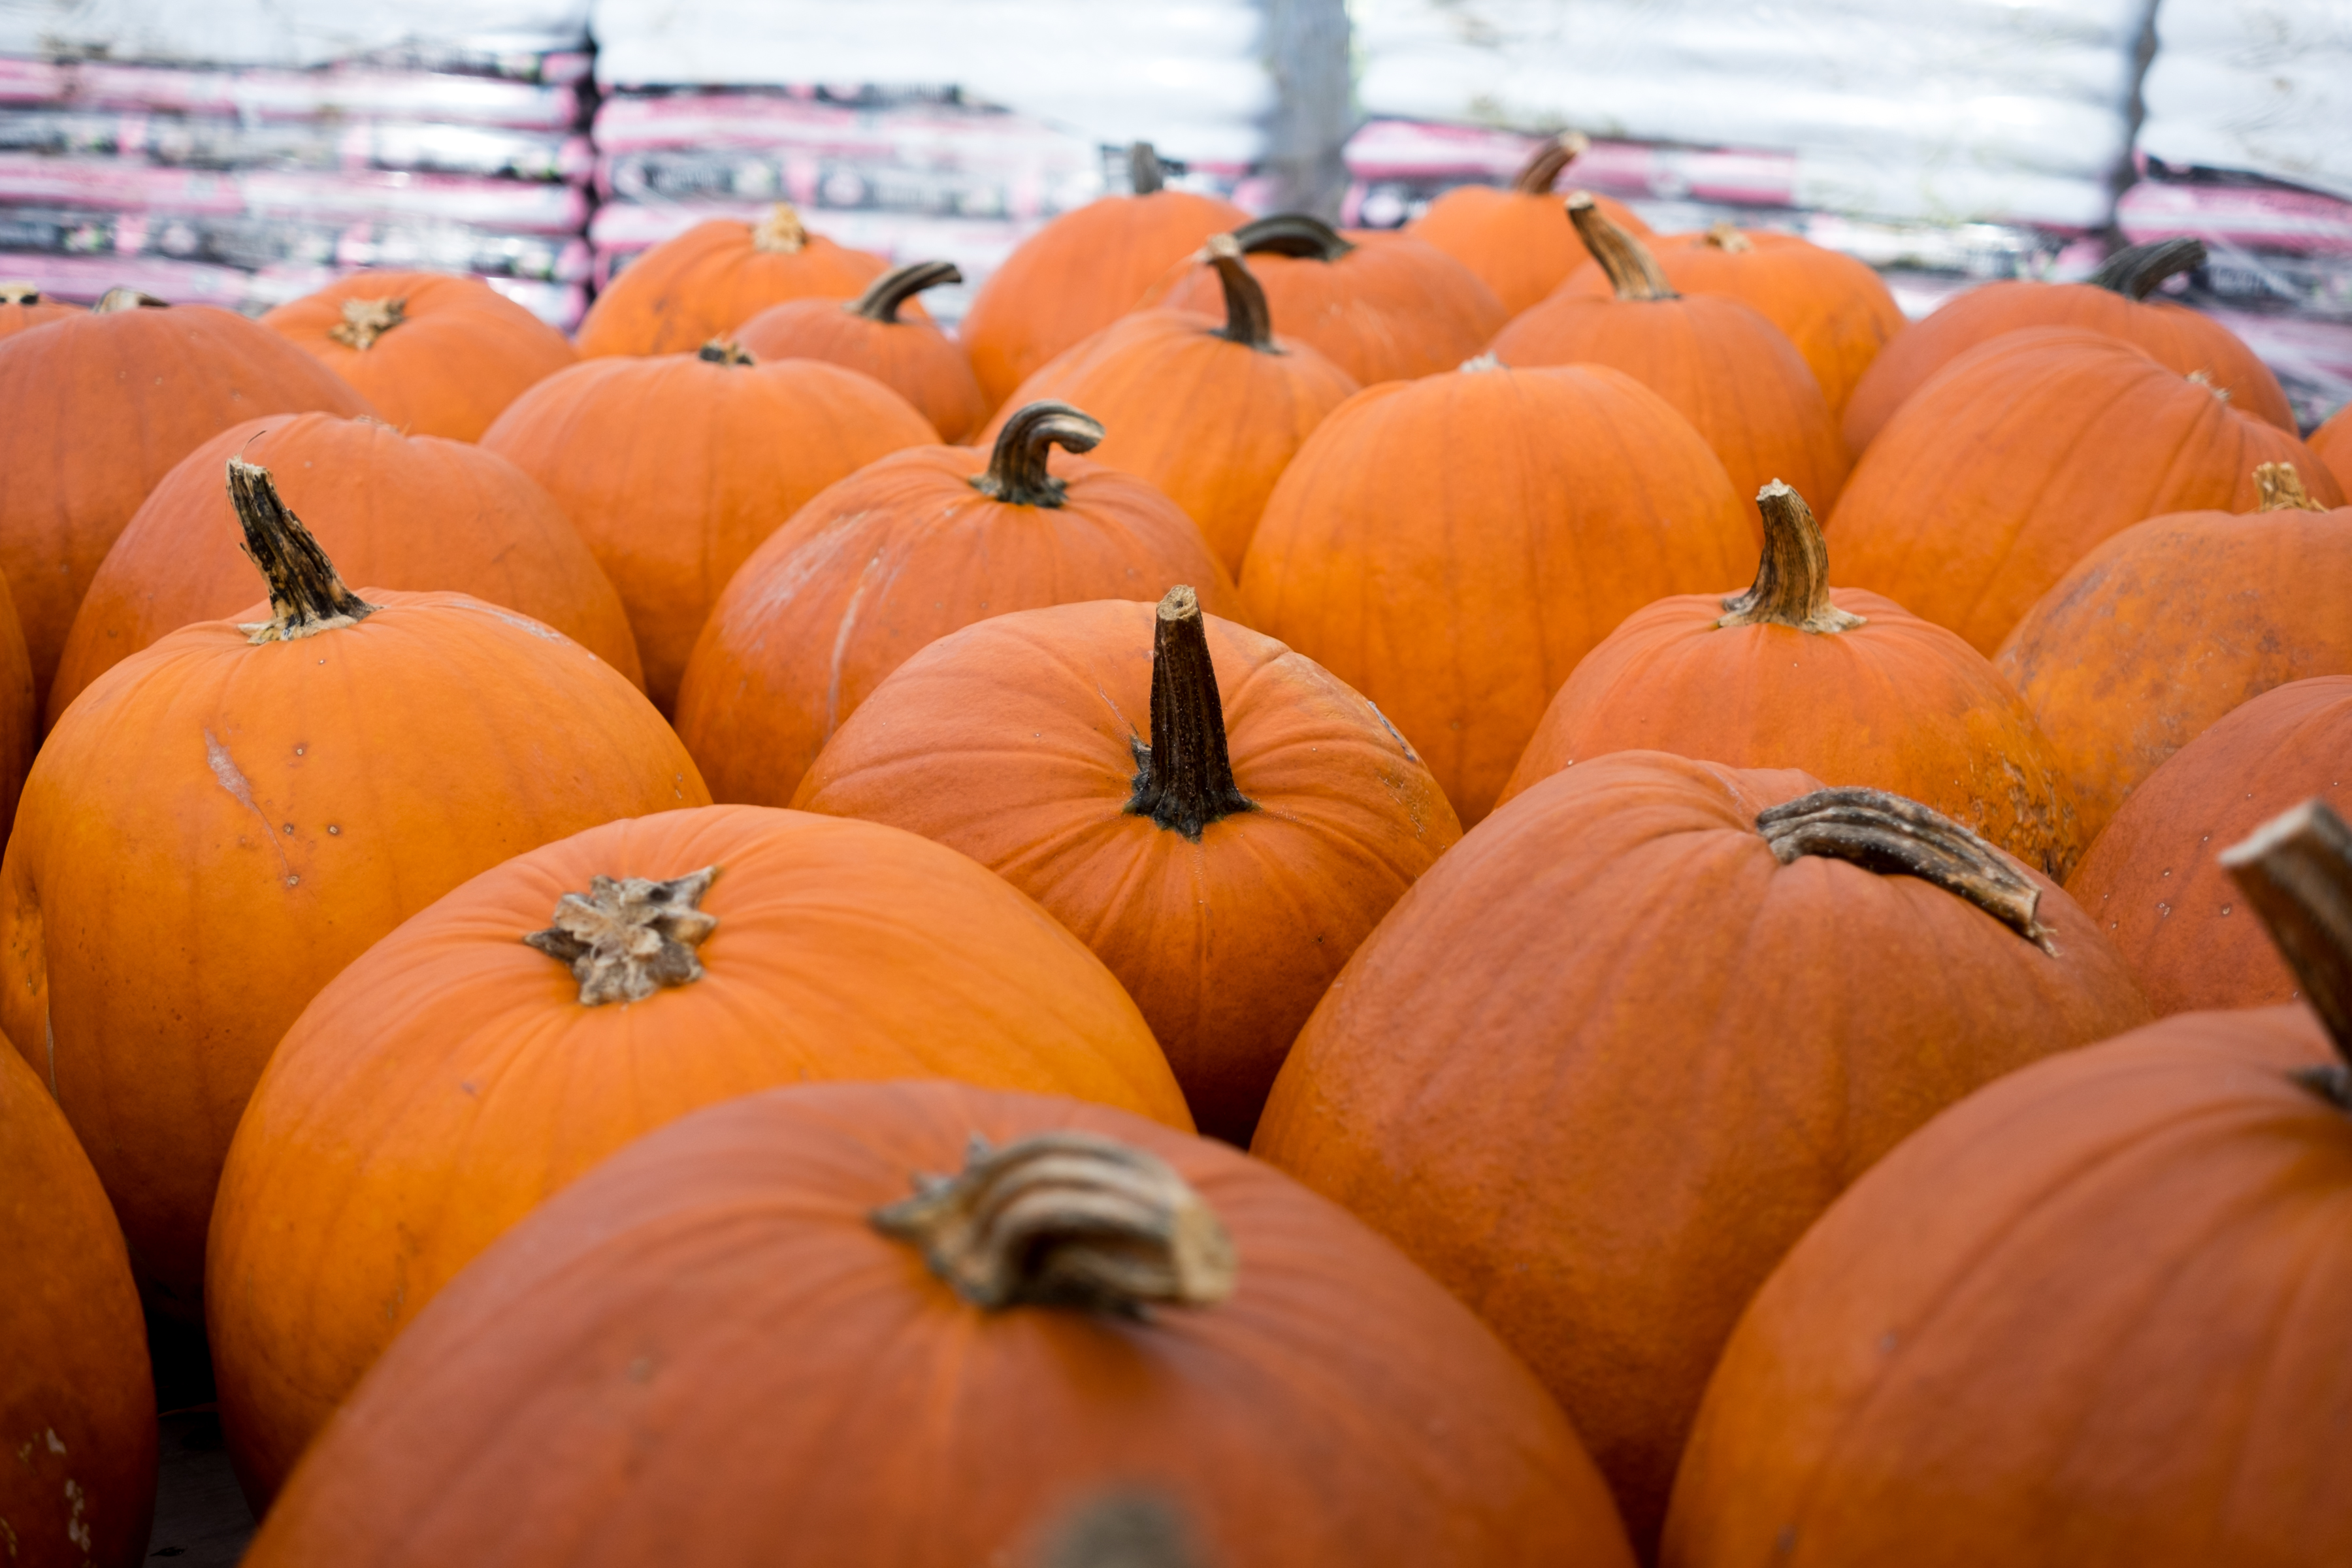 Each of these pumpkins could represent a house with allergen-filled candy. Photo by Marie-Pierre Savard.